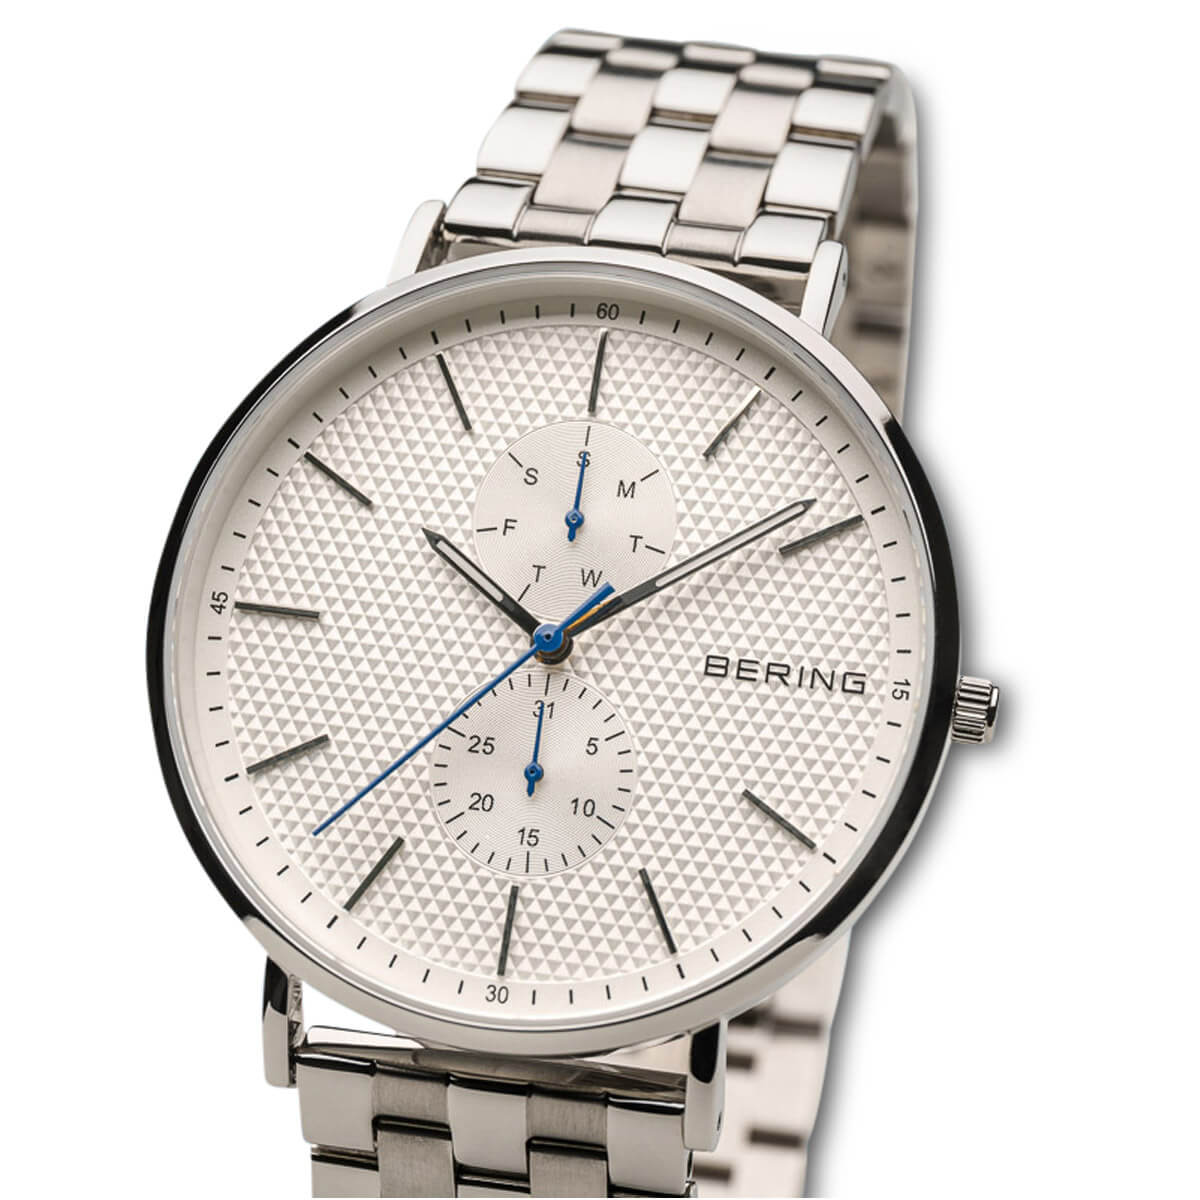 Bering Classic Silver Analogue Men's Watch – 14240-700_image2